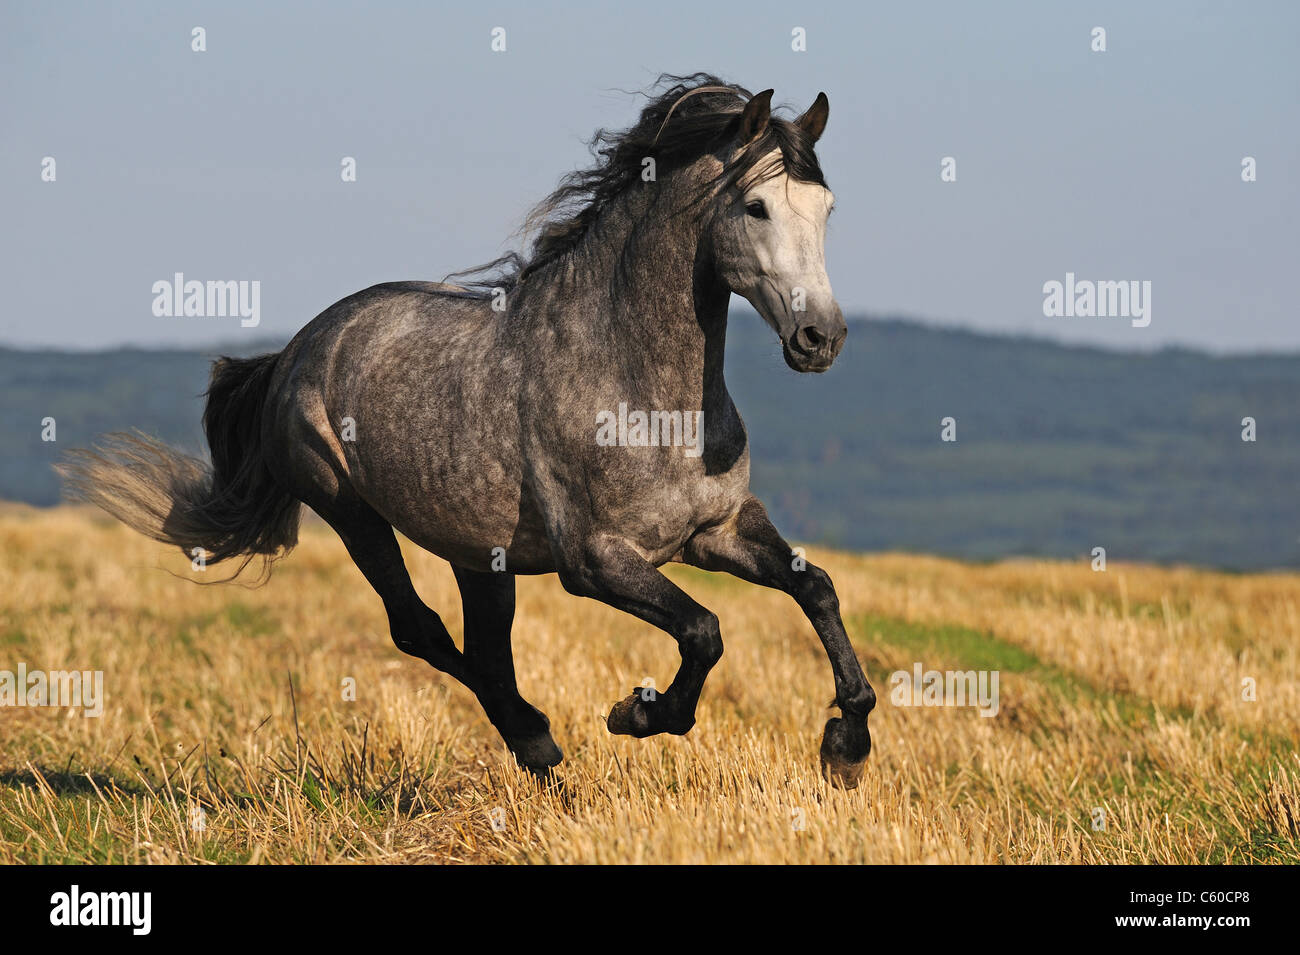 Andalusian Horse (Equus ferus caballus). Dapple-gray stallion in a gallop on a stubble field. Stock Photo